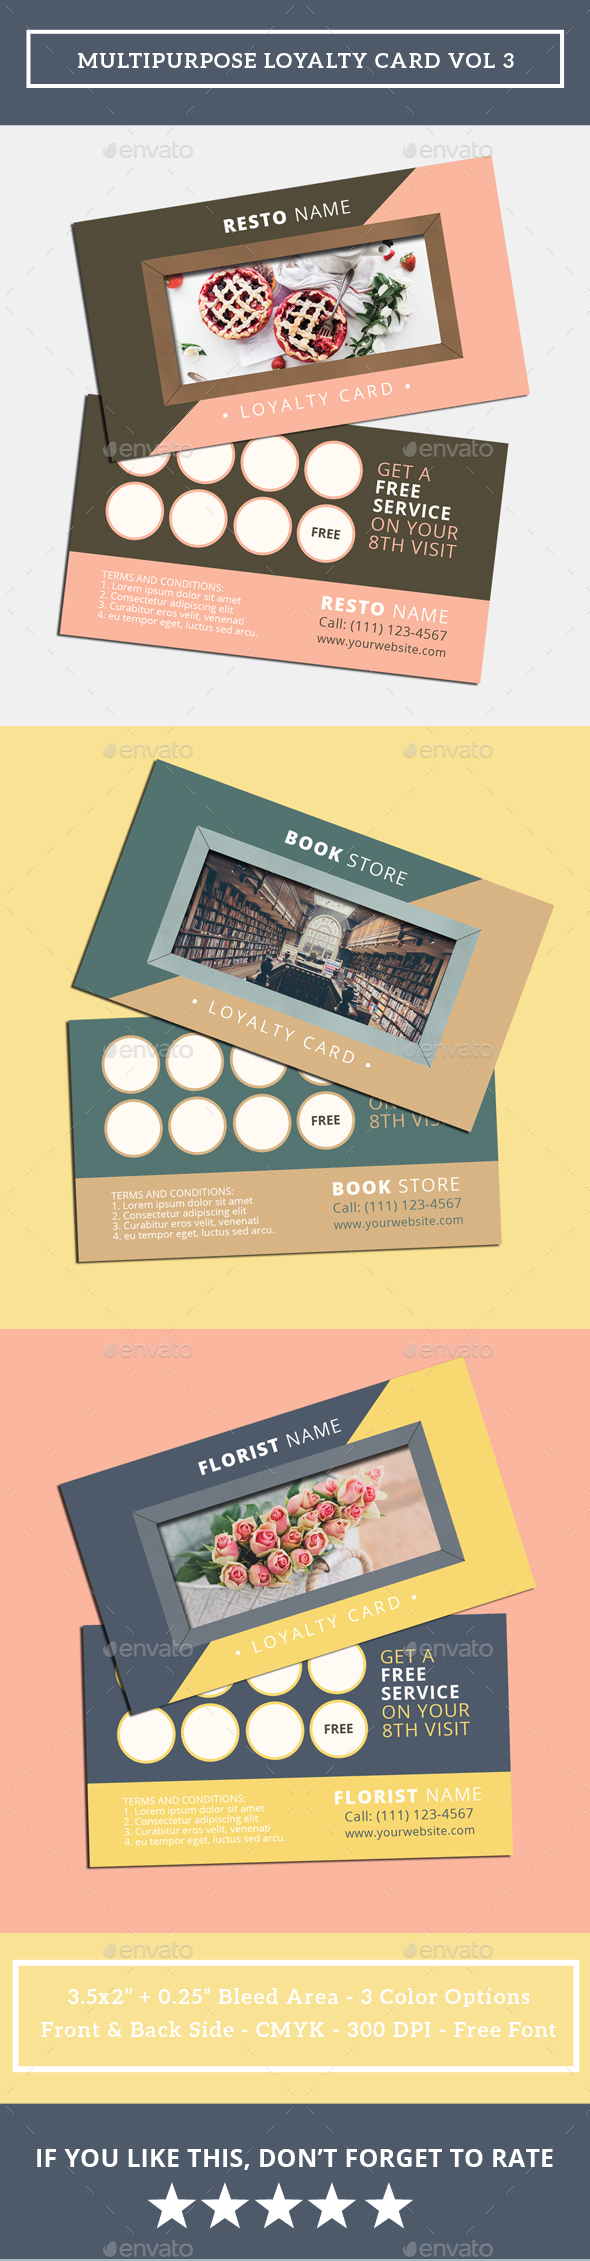 Multipurpose Loyalty Card Vol 3 - Loyalty Cards Cards & Invites